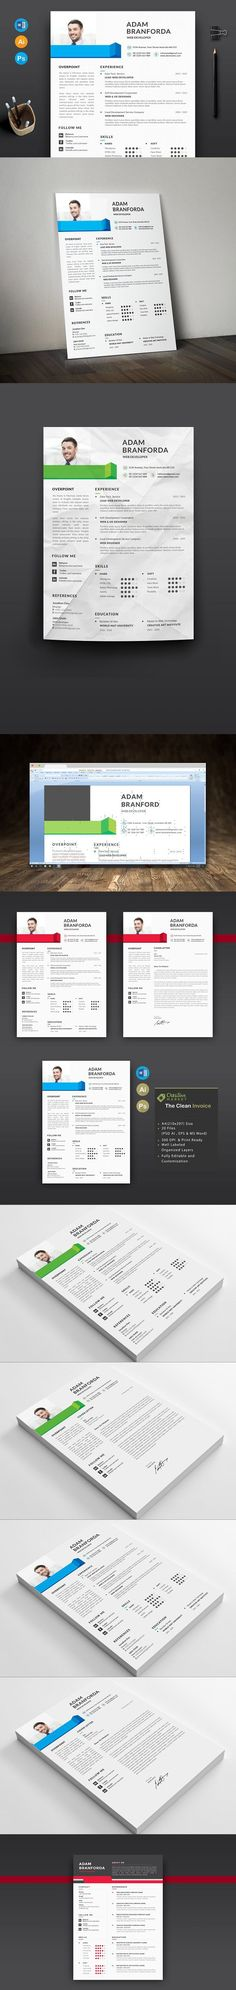 Johnny Doe - Simple Resume Template Resume Templates Pinterest - resume templates website